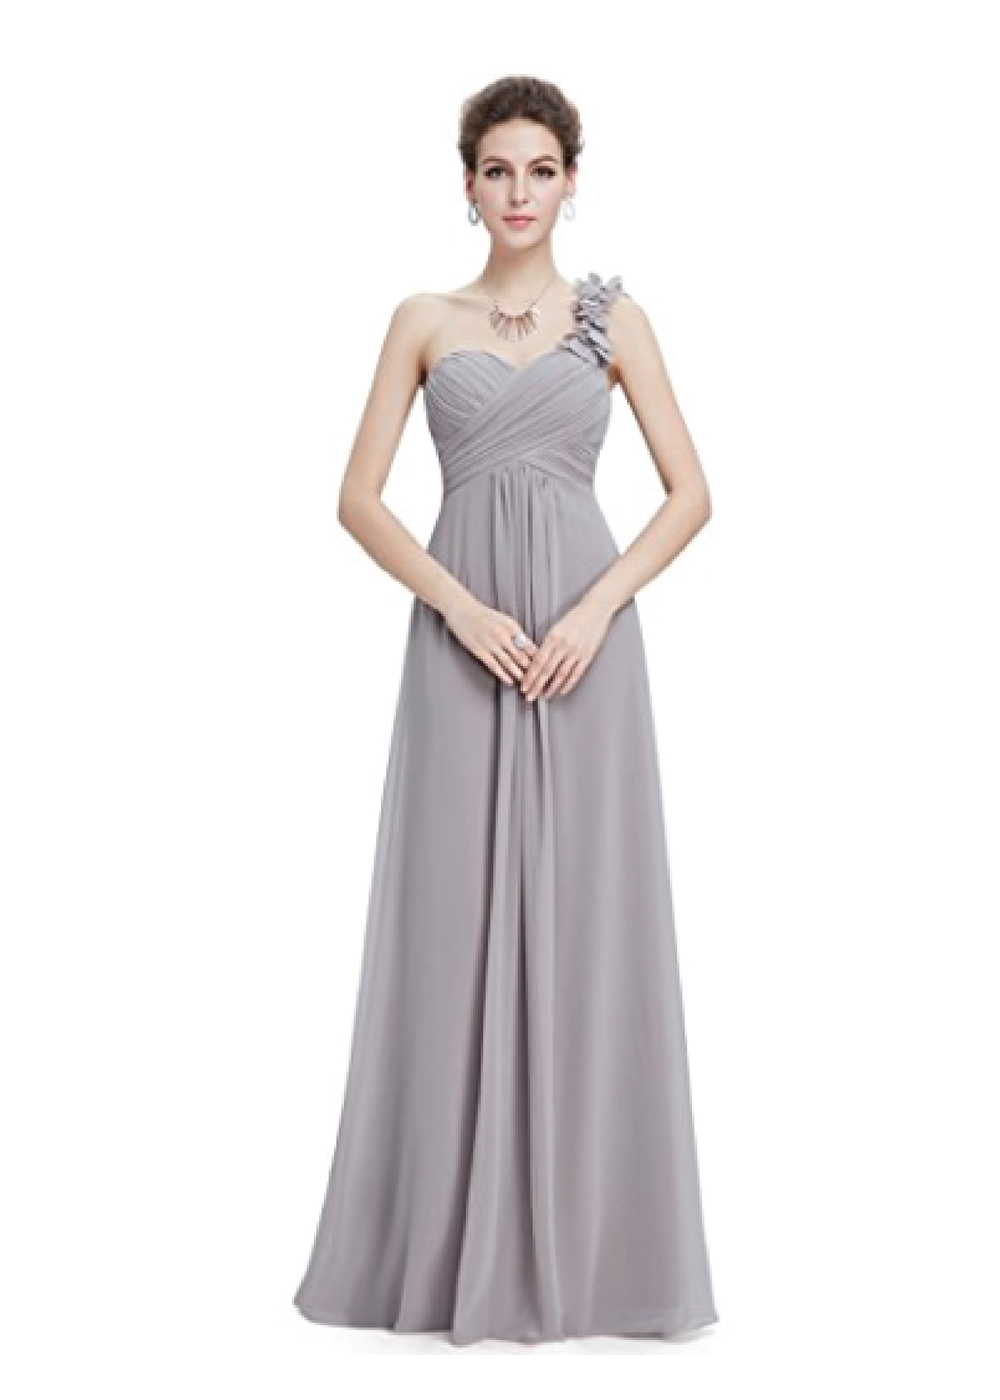 Top Bridesmaid Dresses Under 100-01.png